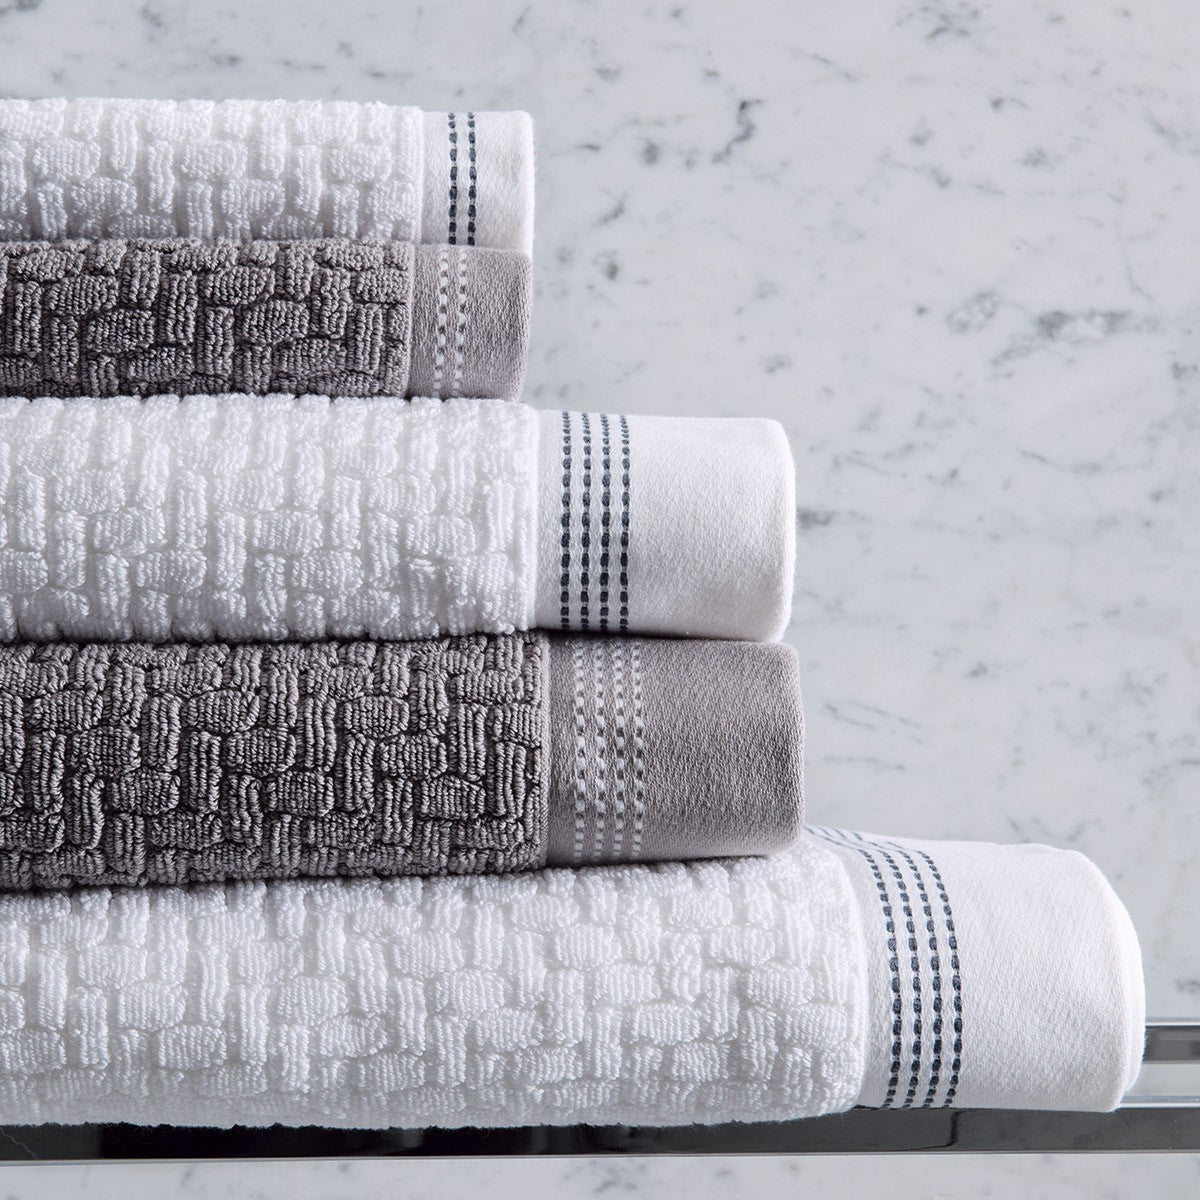 Le Jacquard Français | Couture White Bath Collection | Fig Linens - White, Gray, towels